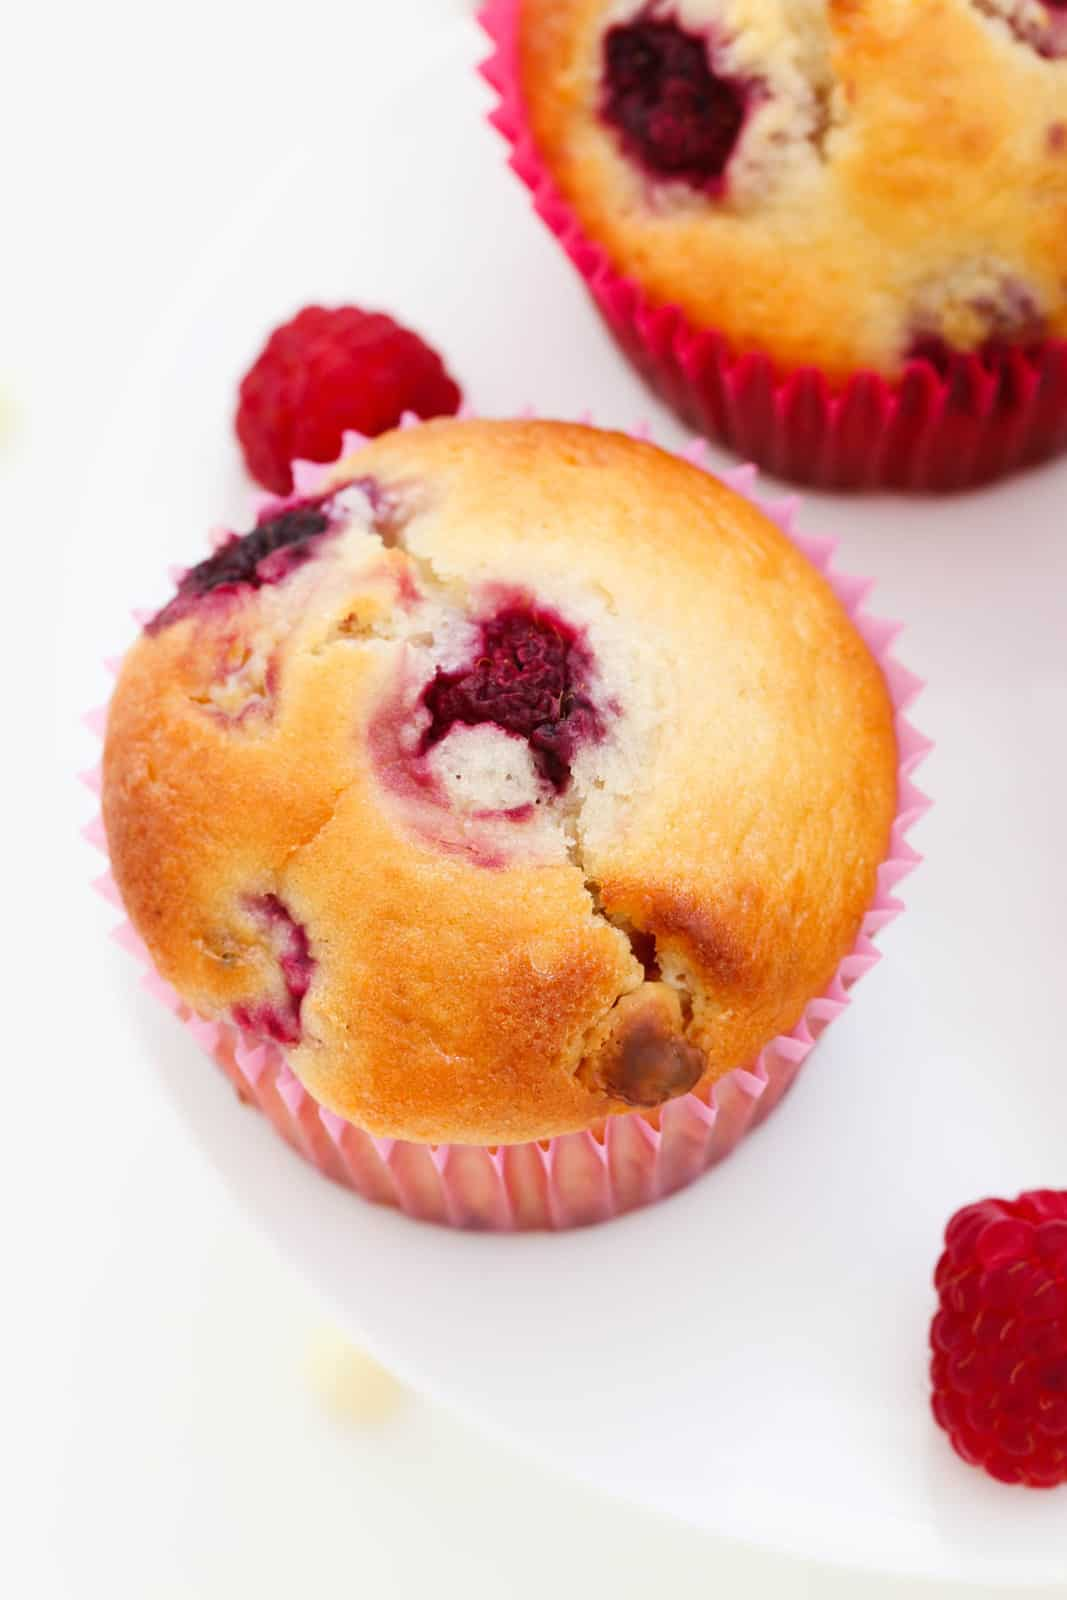 An overhead view of muffins with raspberries, in paper cases on a white cake stand.